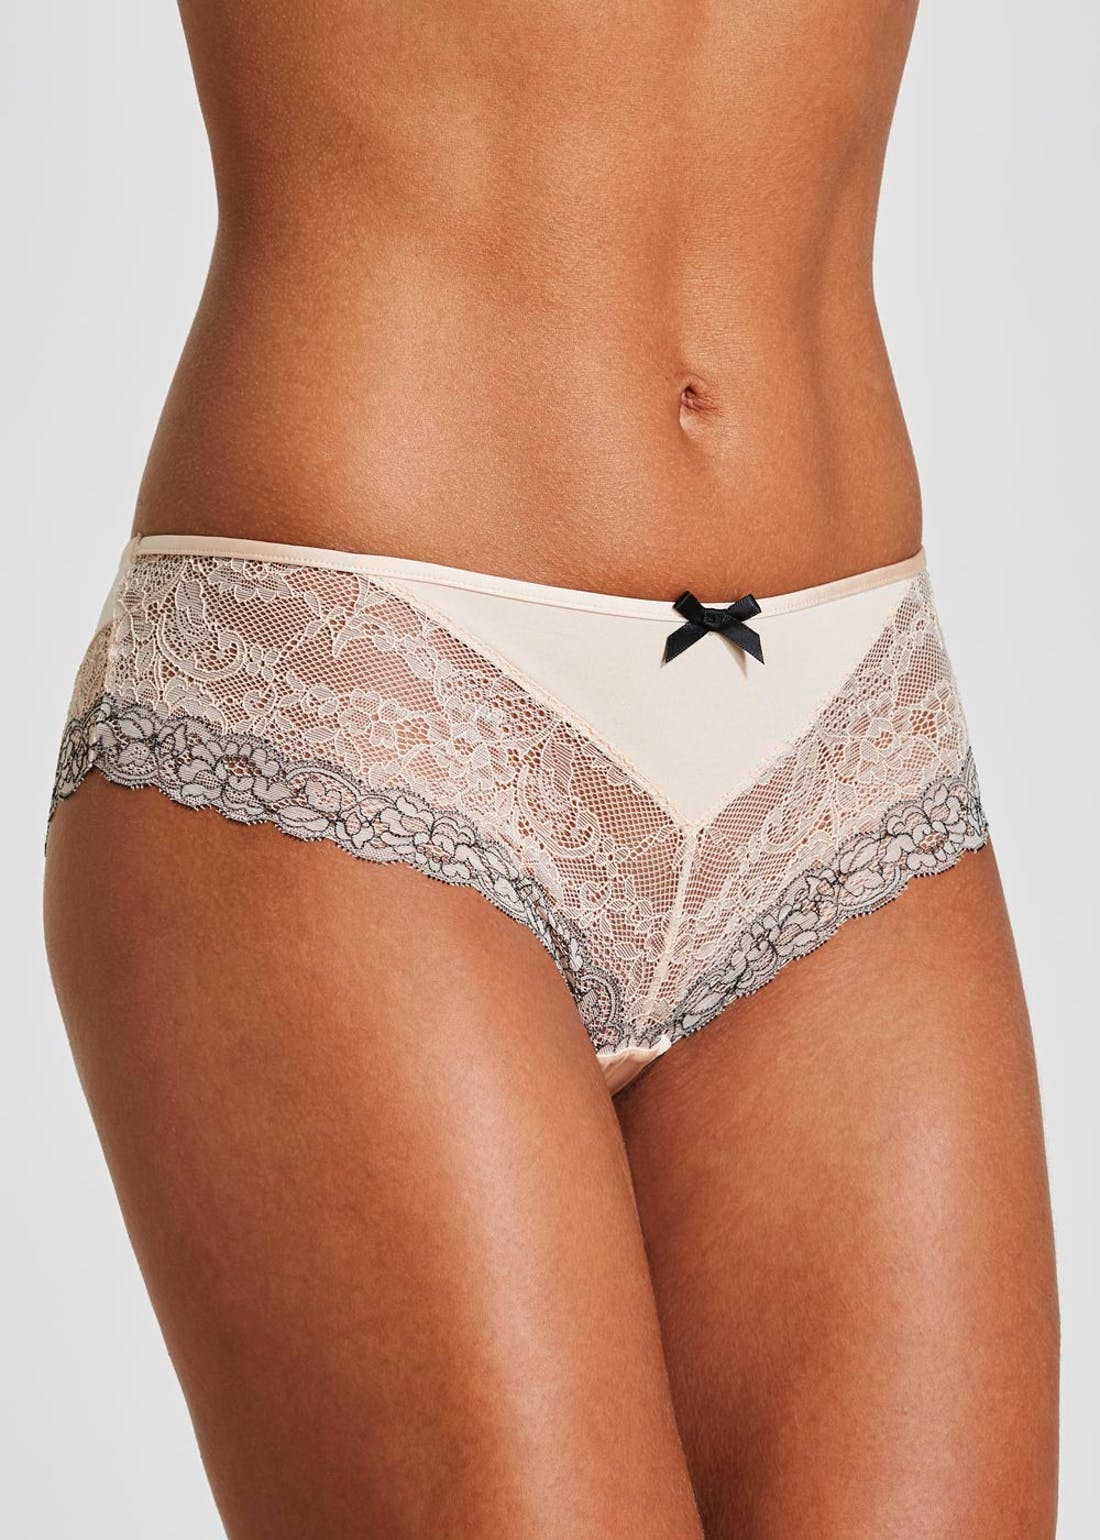 Two Tone Lace High Leg Knickers